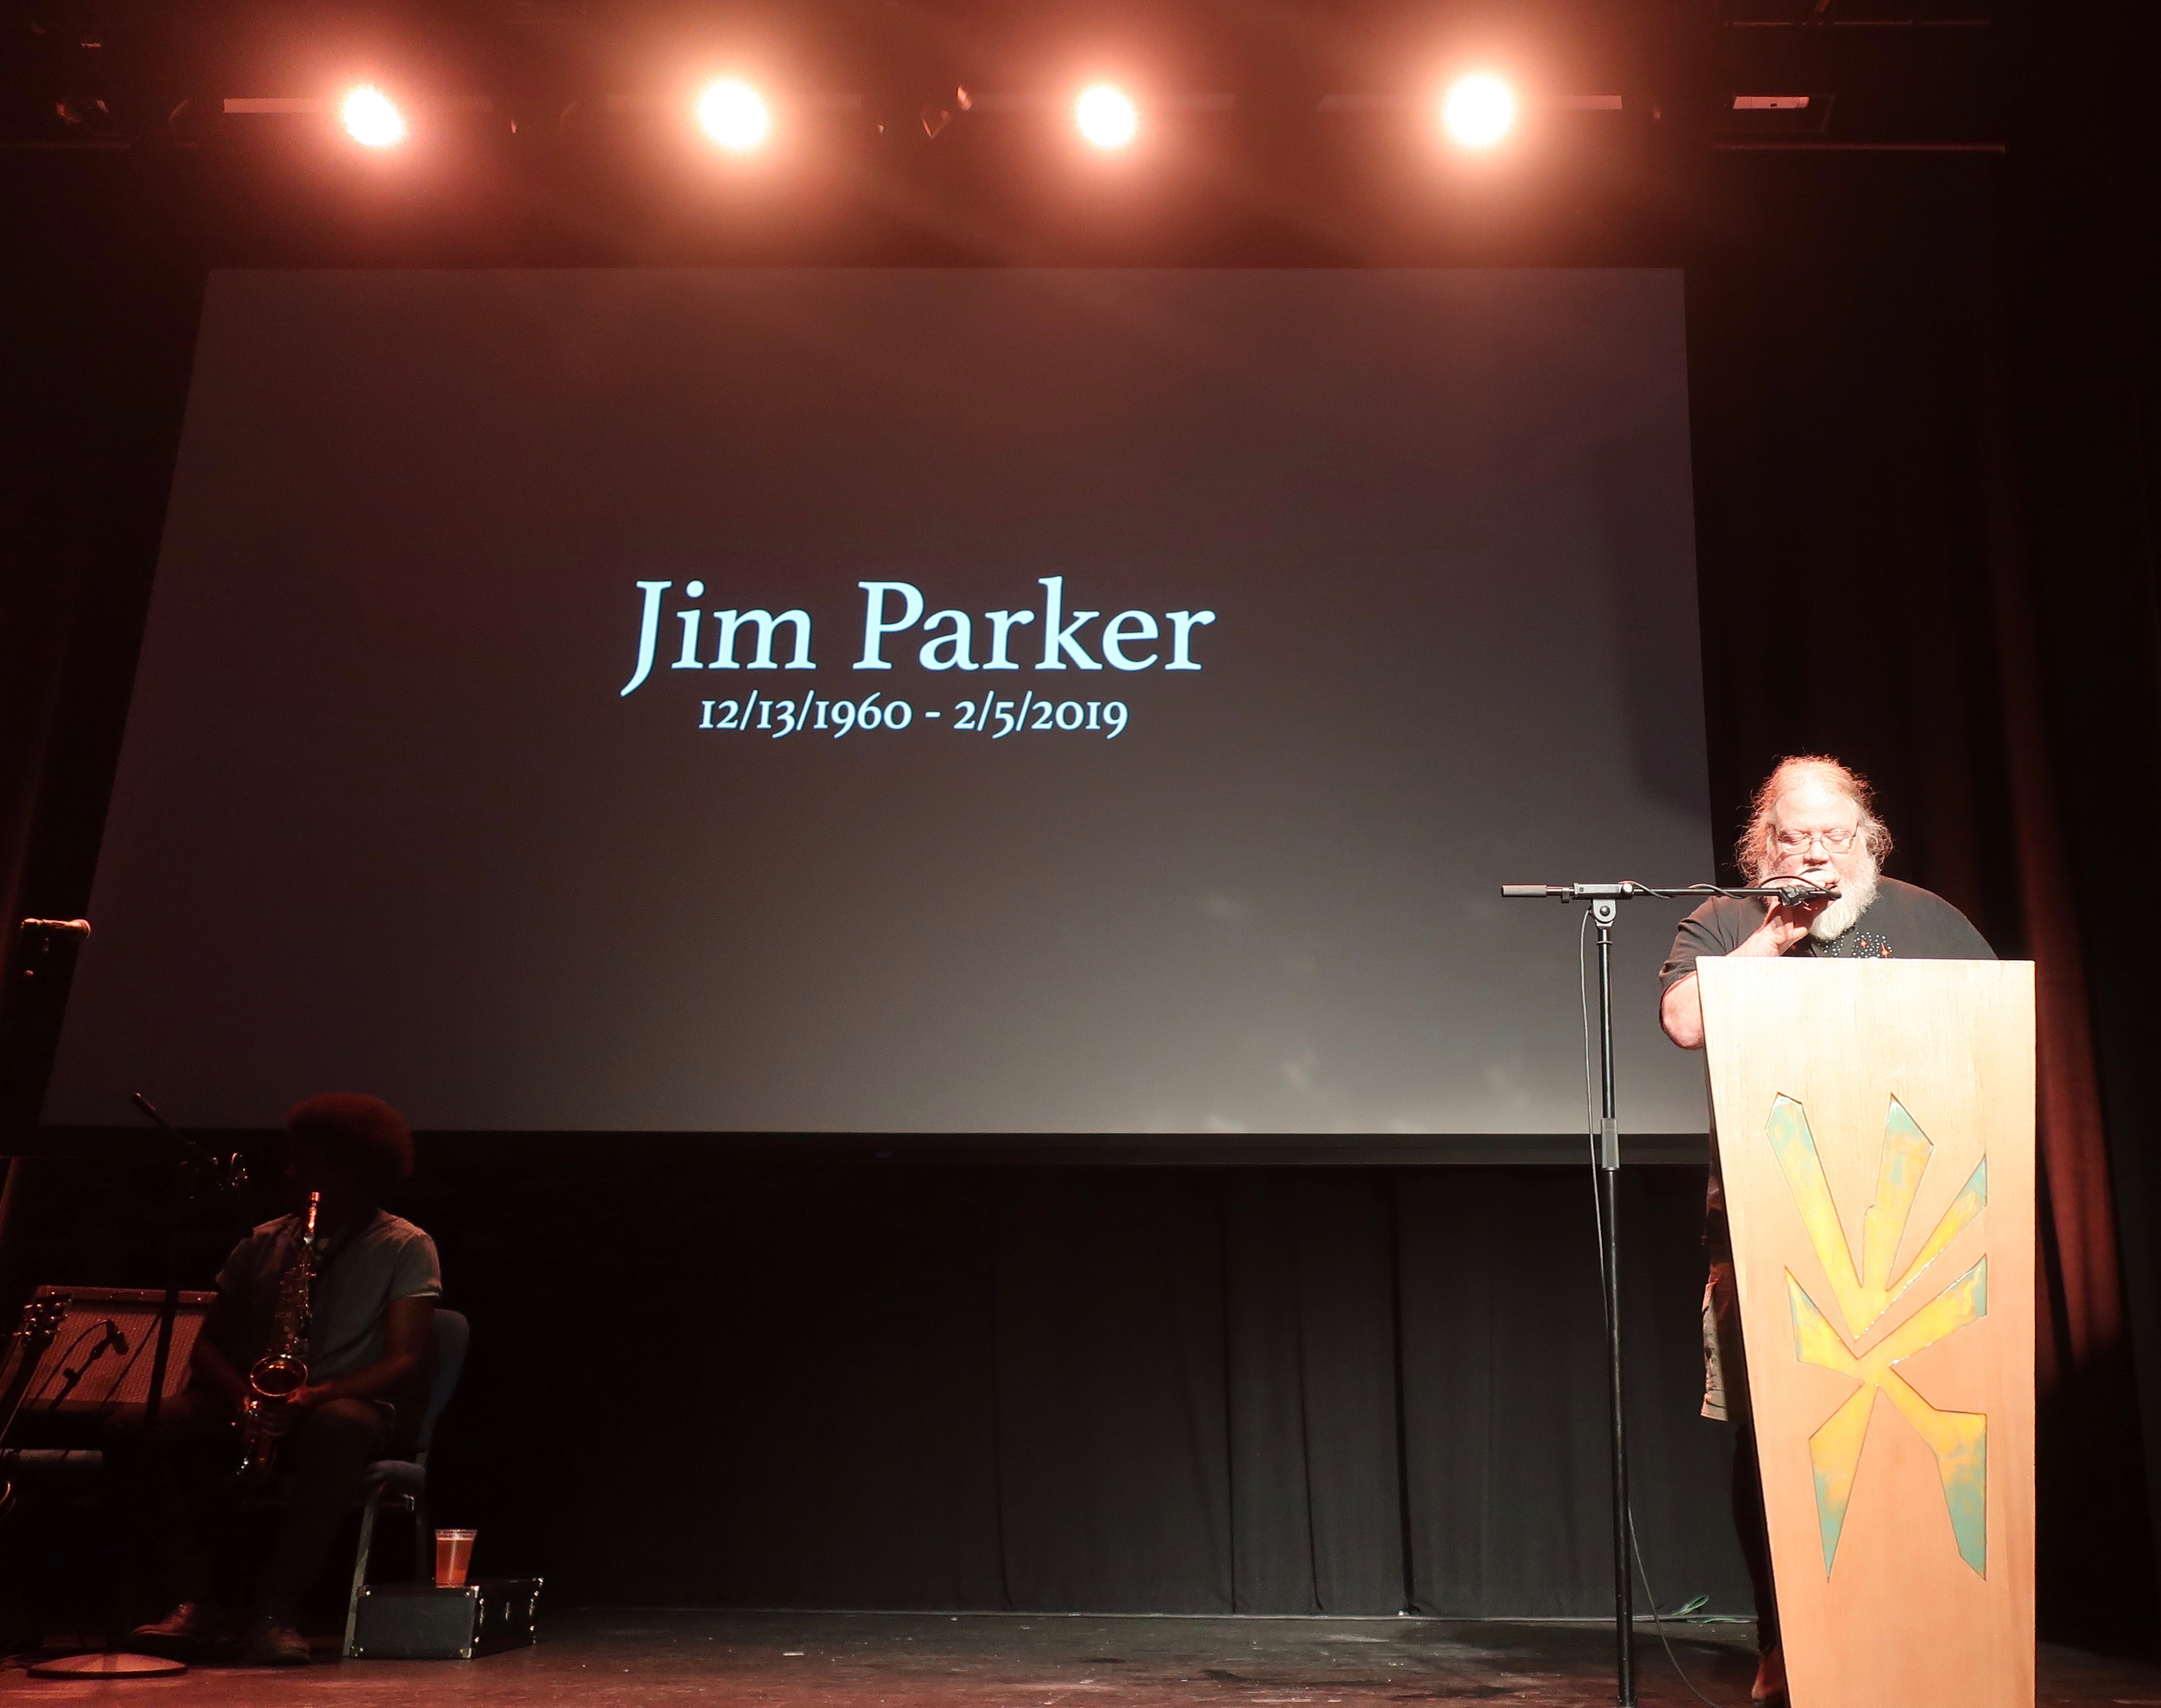 John Harris inducts the late Jim Parker into the Oregon Beer Hall of Fame at the 2019 Oregon Beer Awards.